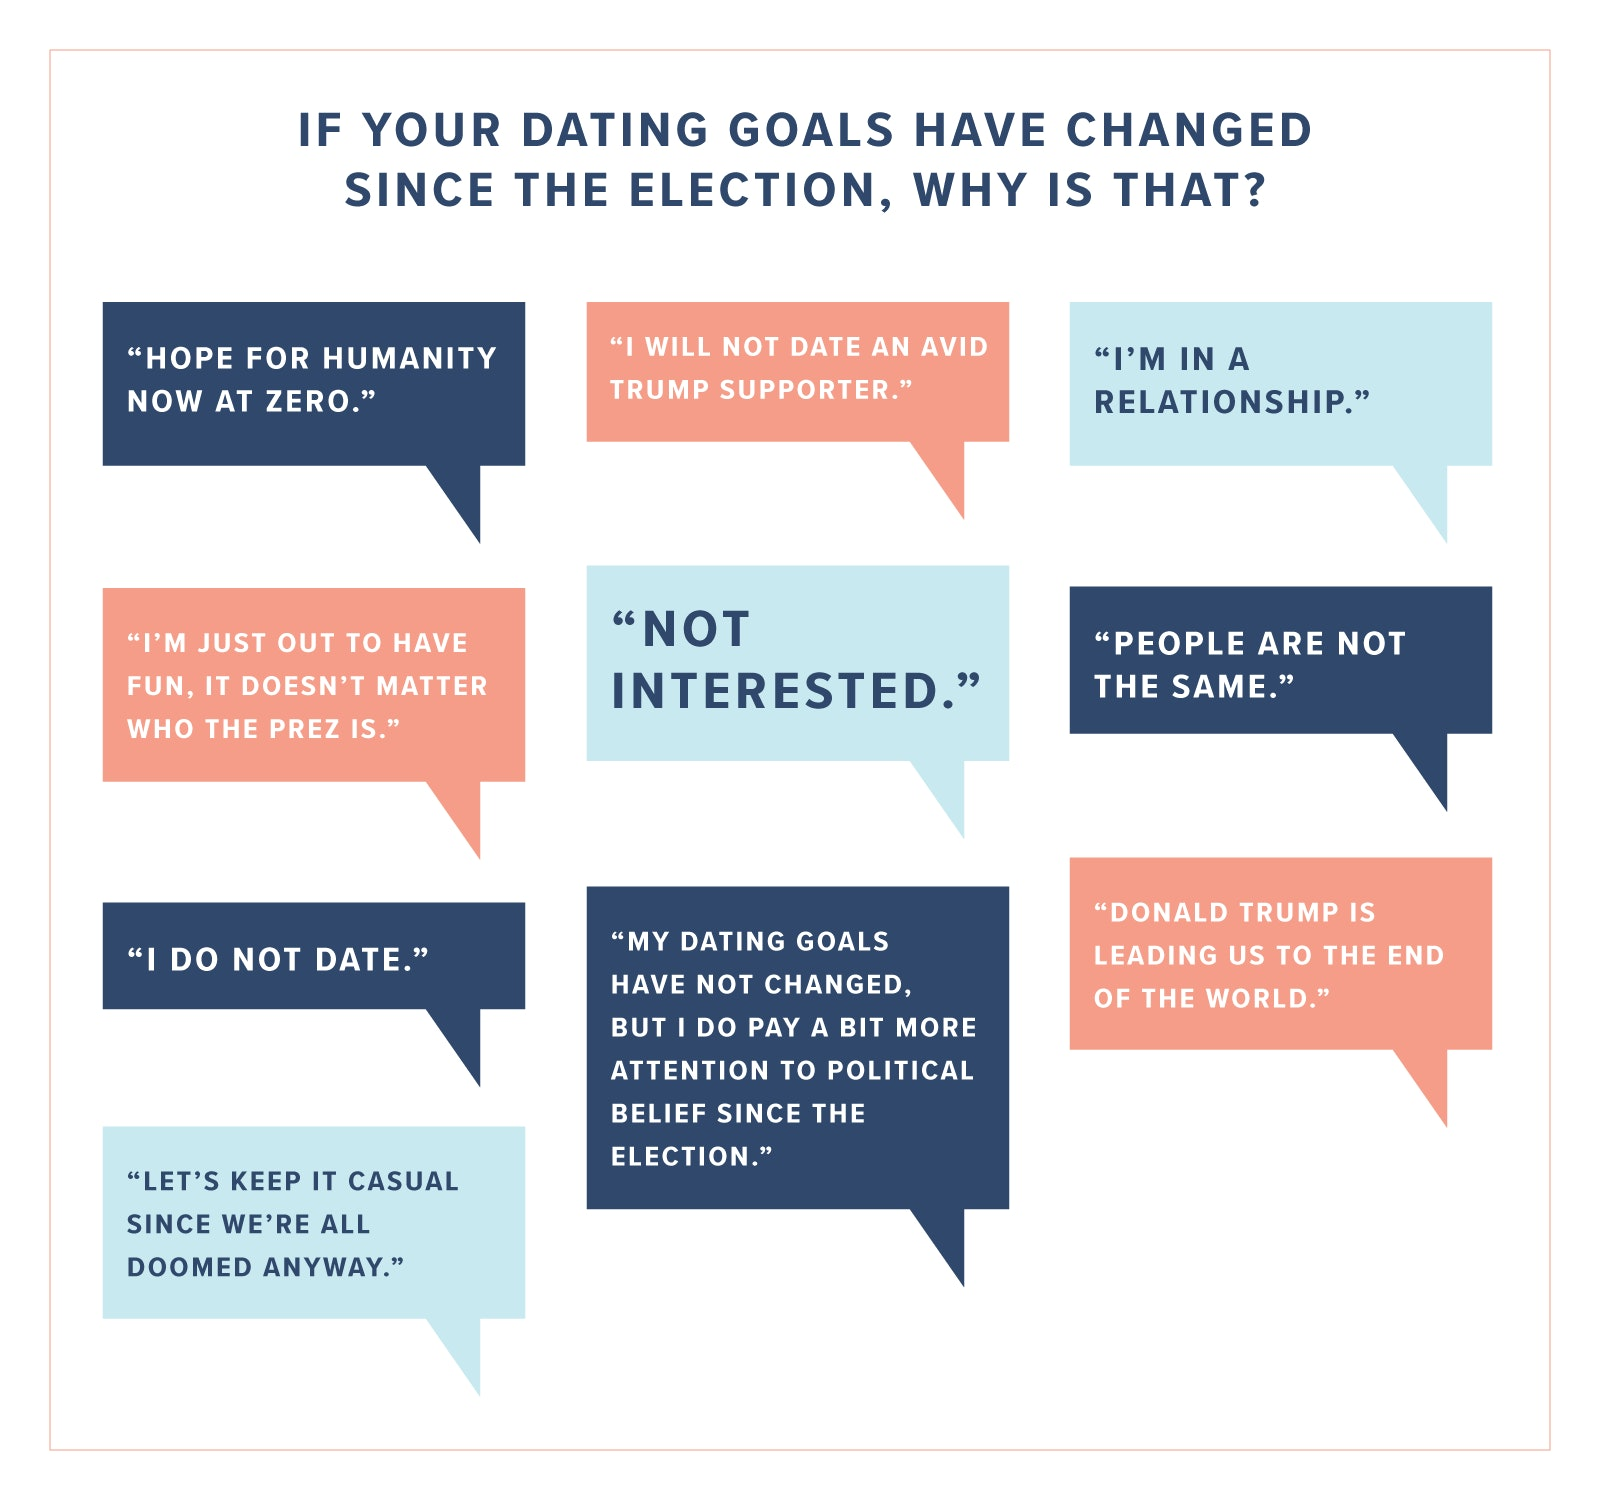 Is dating the same as going out